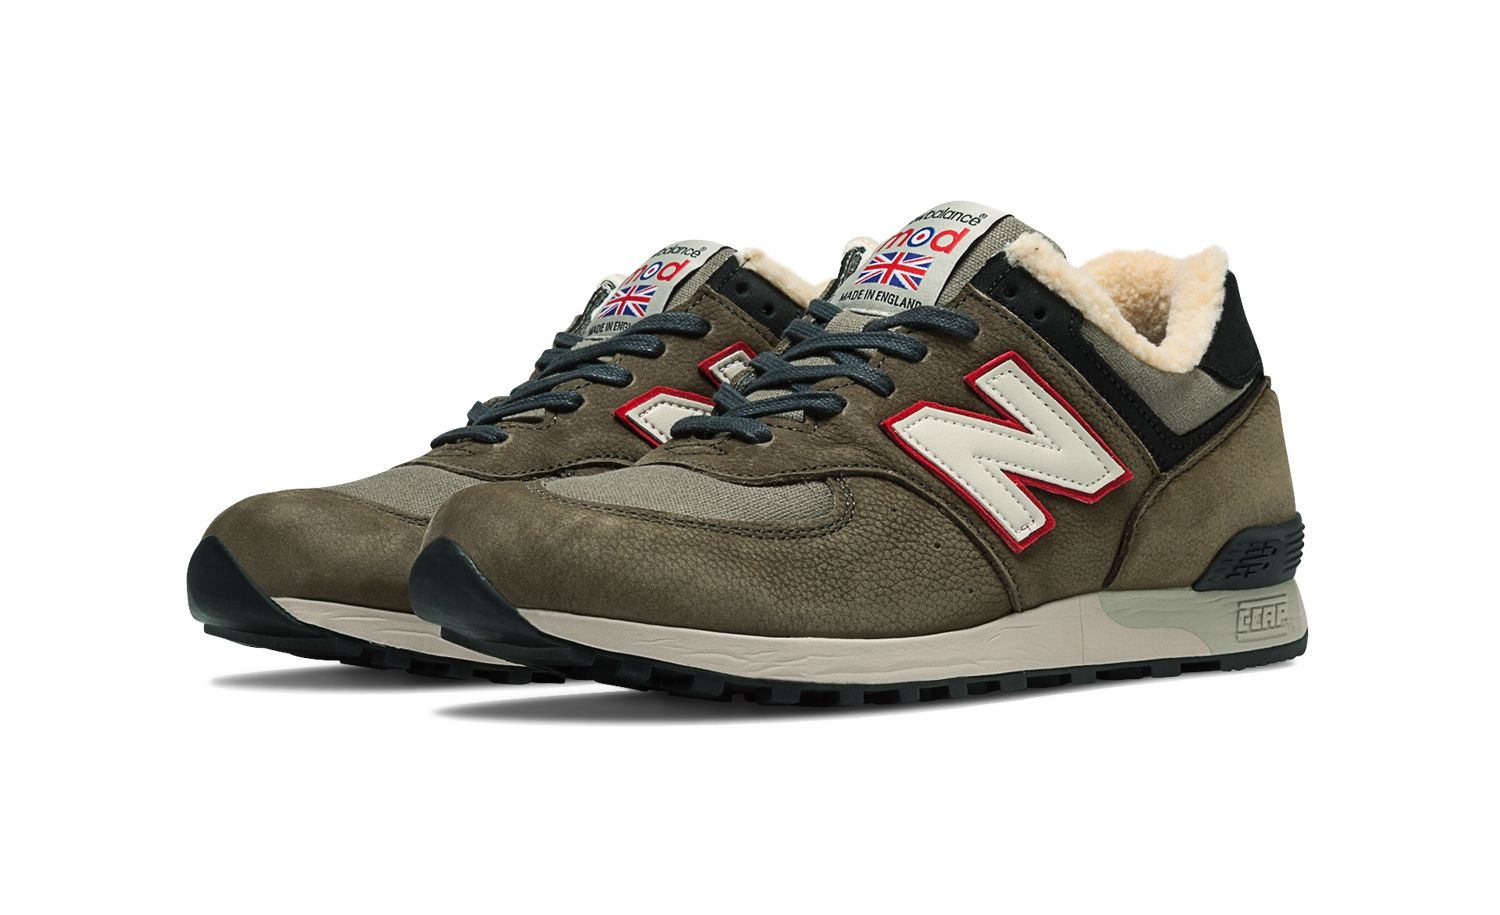 New Balance 576 Music Review